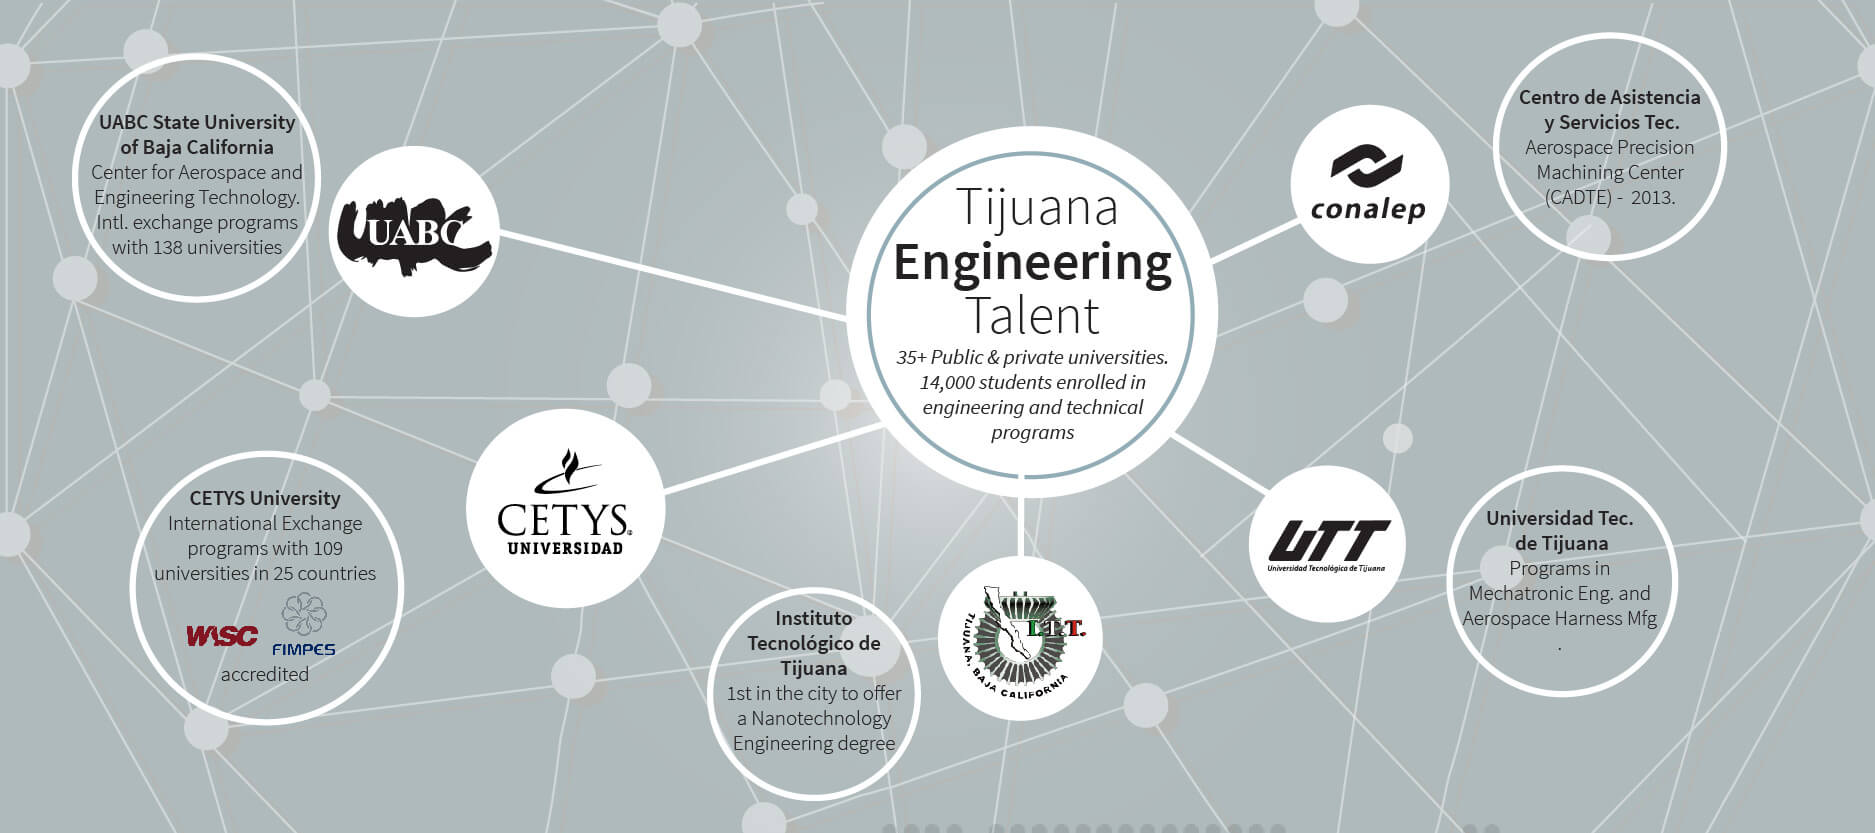 WORKFORCE-Tijuana-Engineering-Talent-2016-01